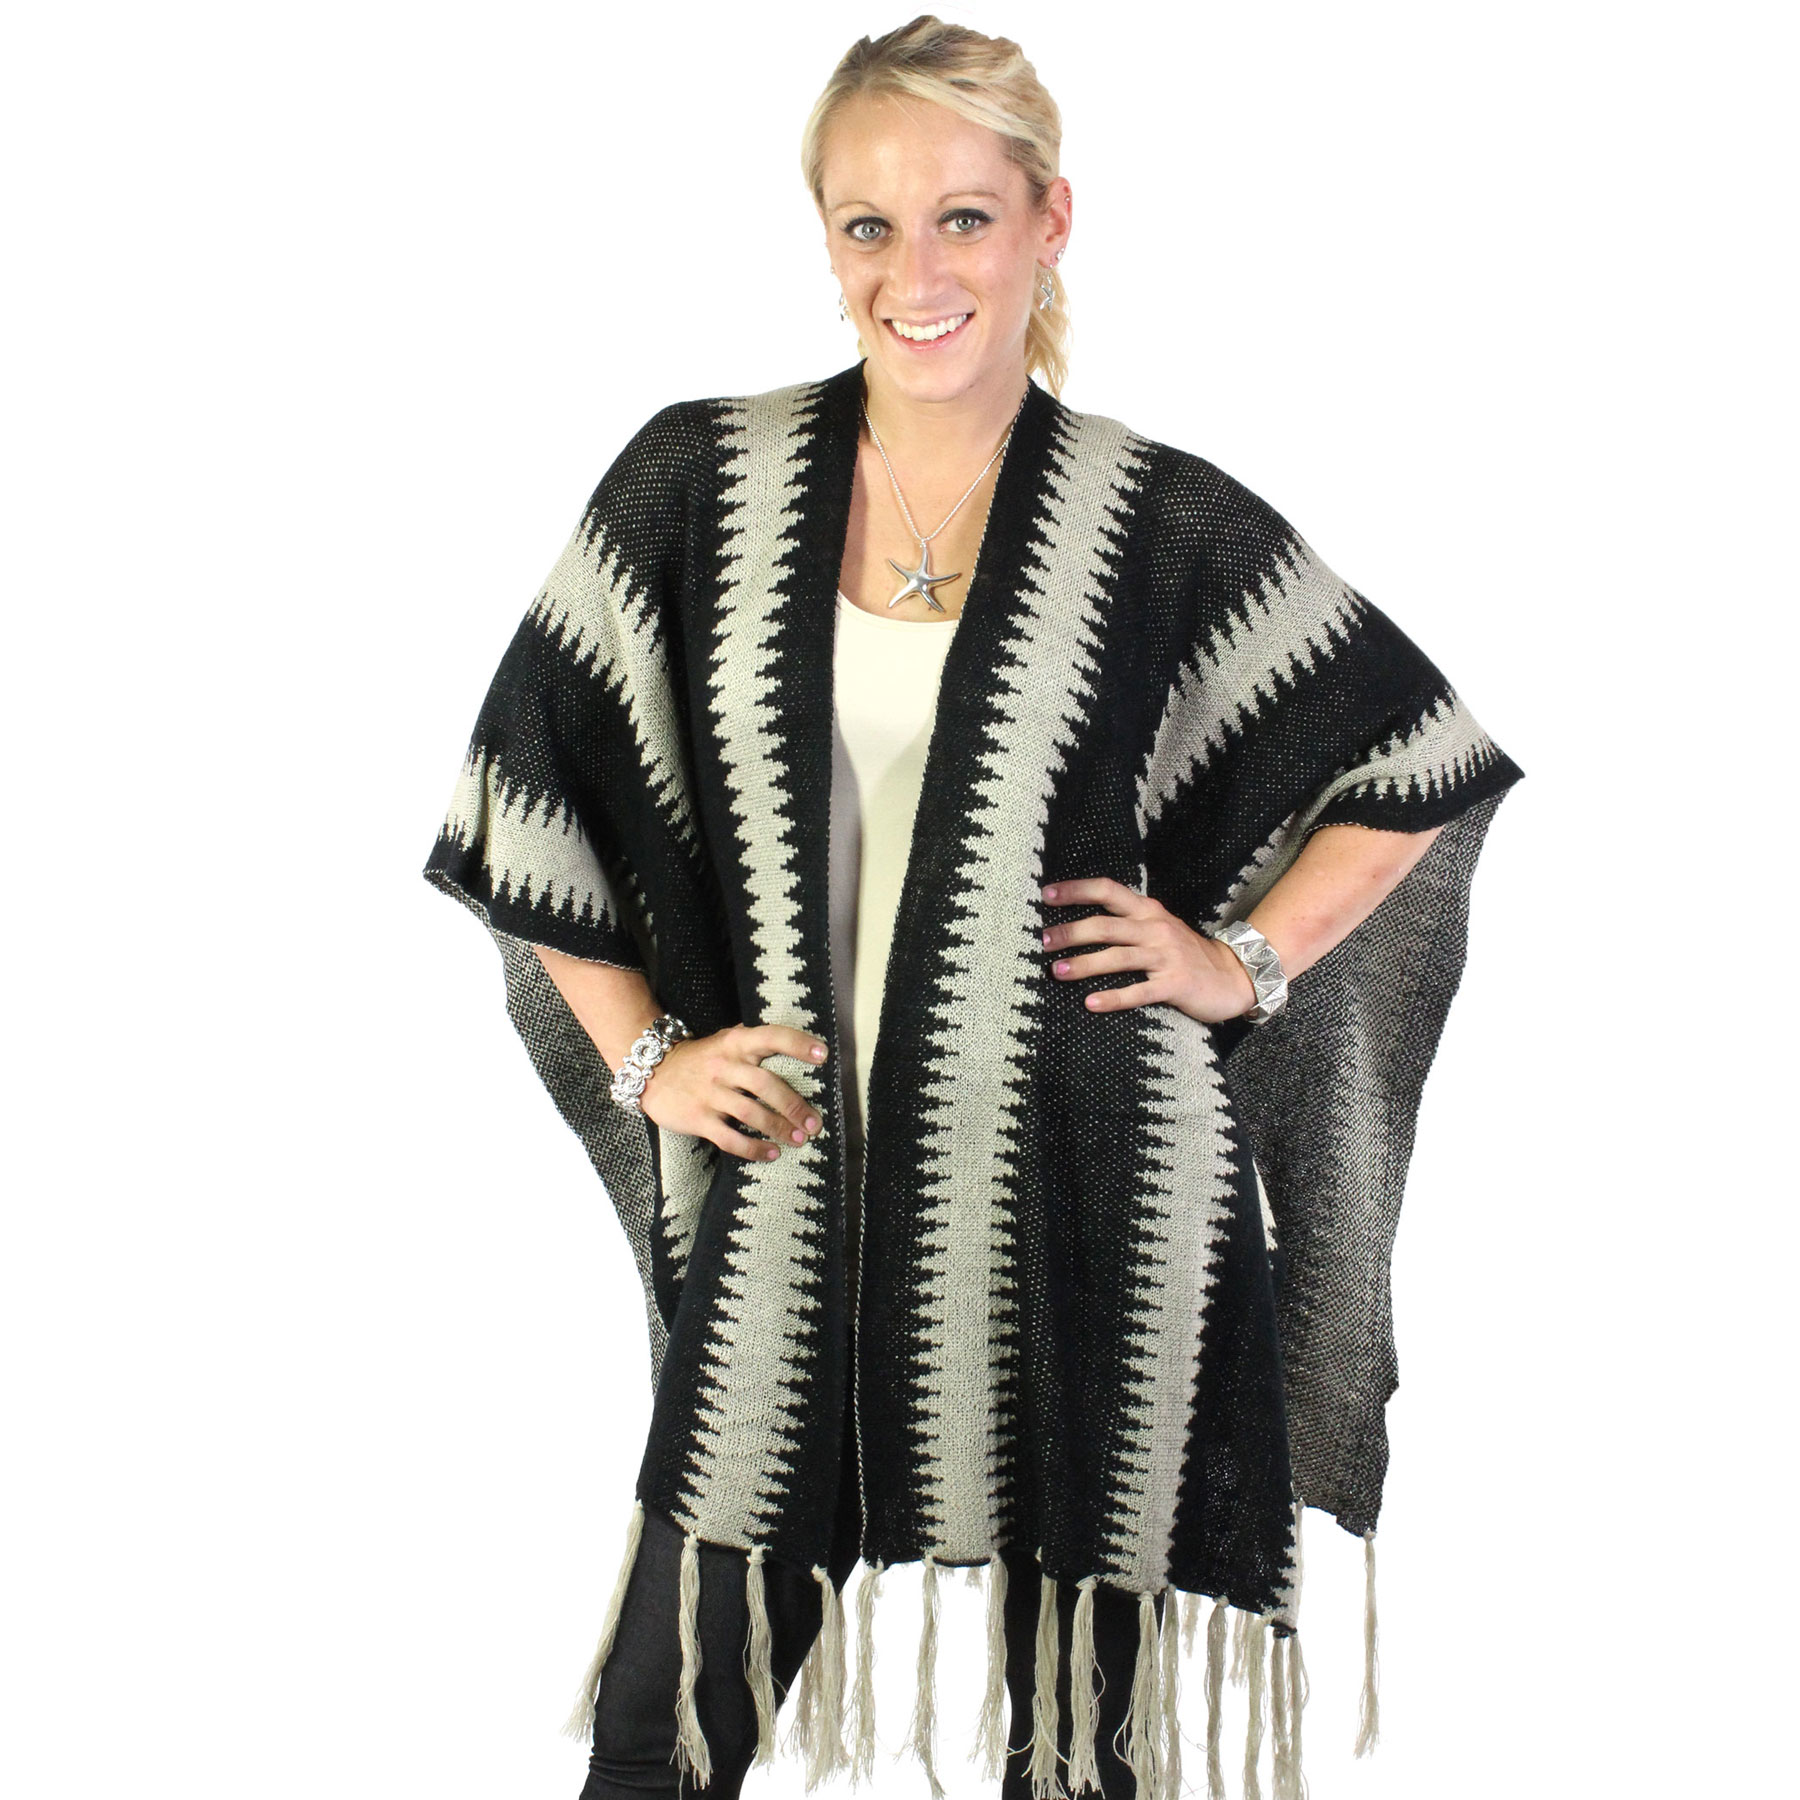 Ruana Capes - Two Tone Knit w/ Tassel 8644